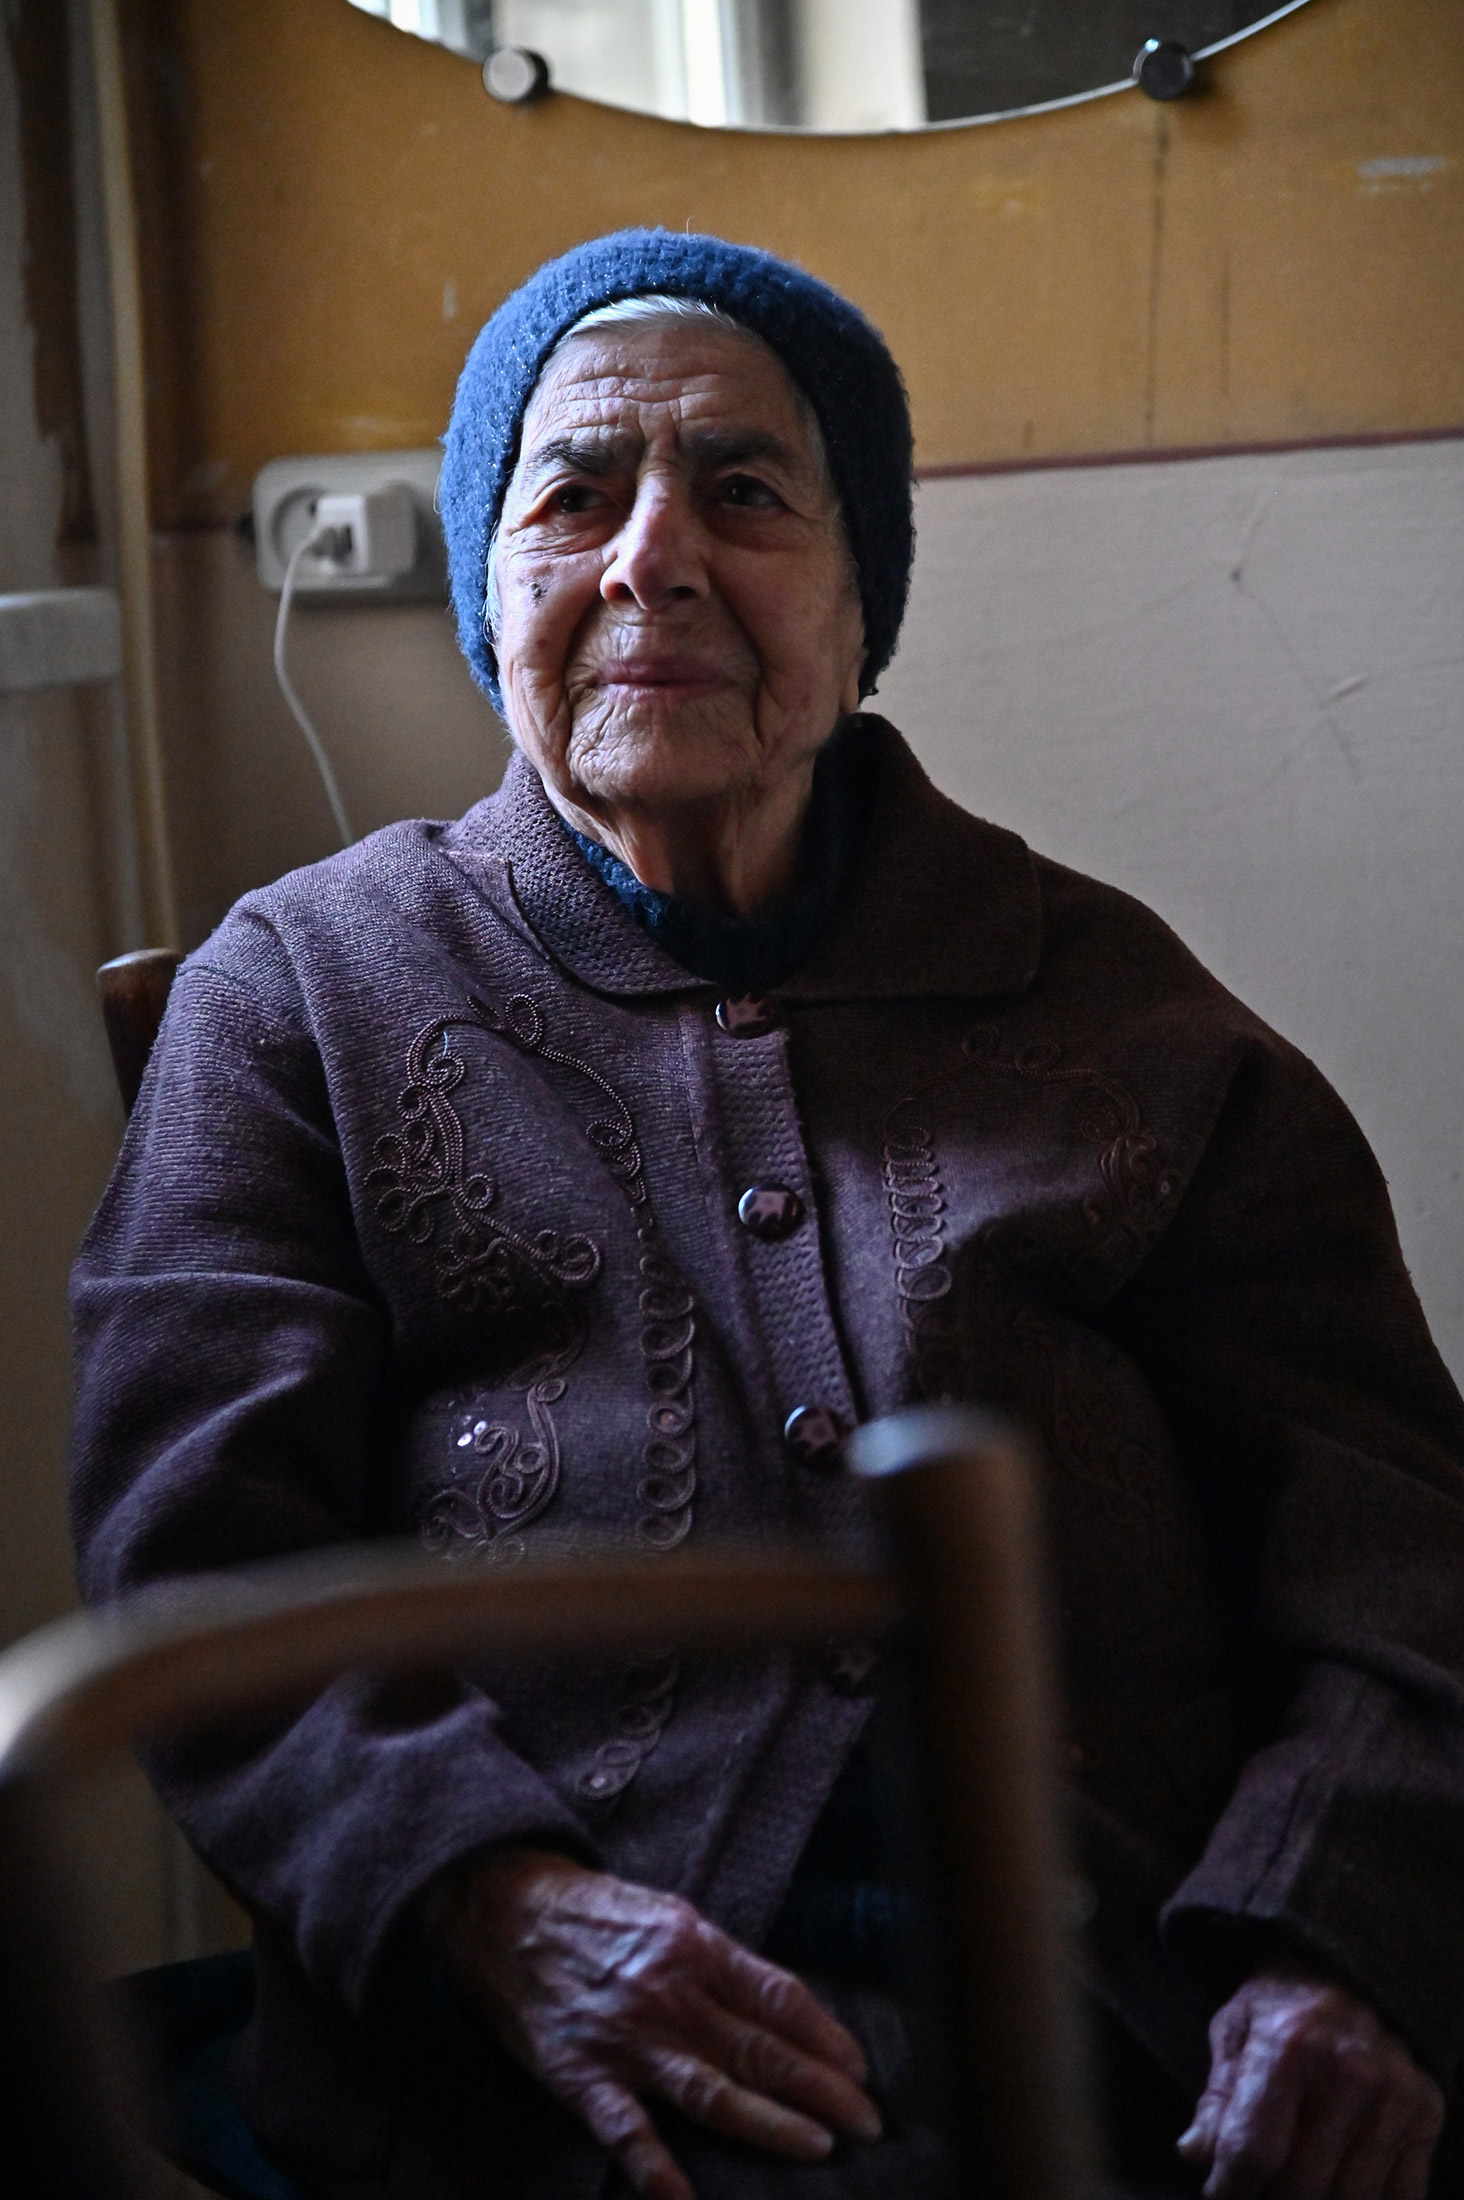 Alice Keshisyan, 94, has been a client of Sveta's for 26 years. Alice emigrated from Greece during t ...